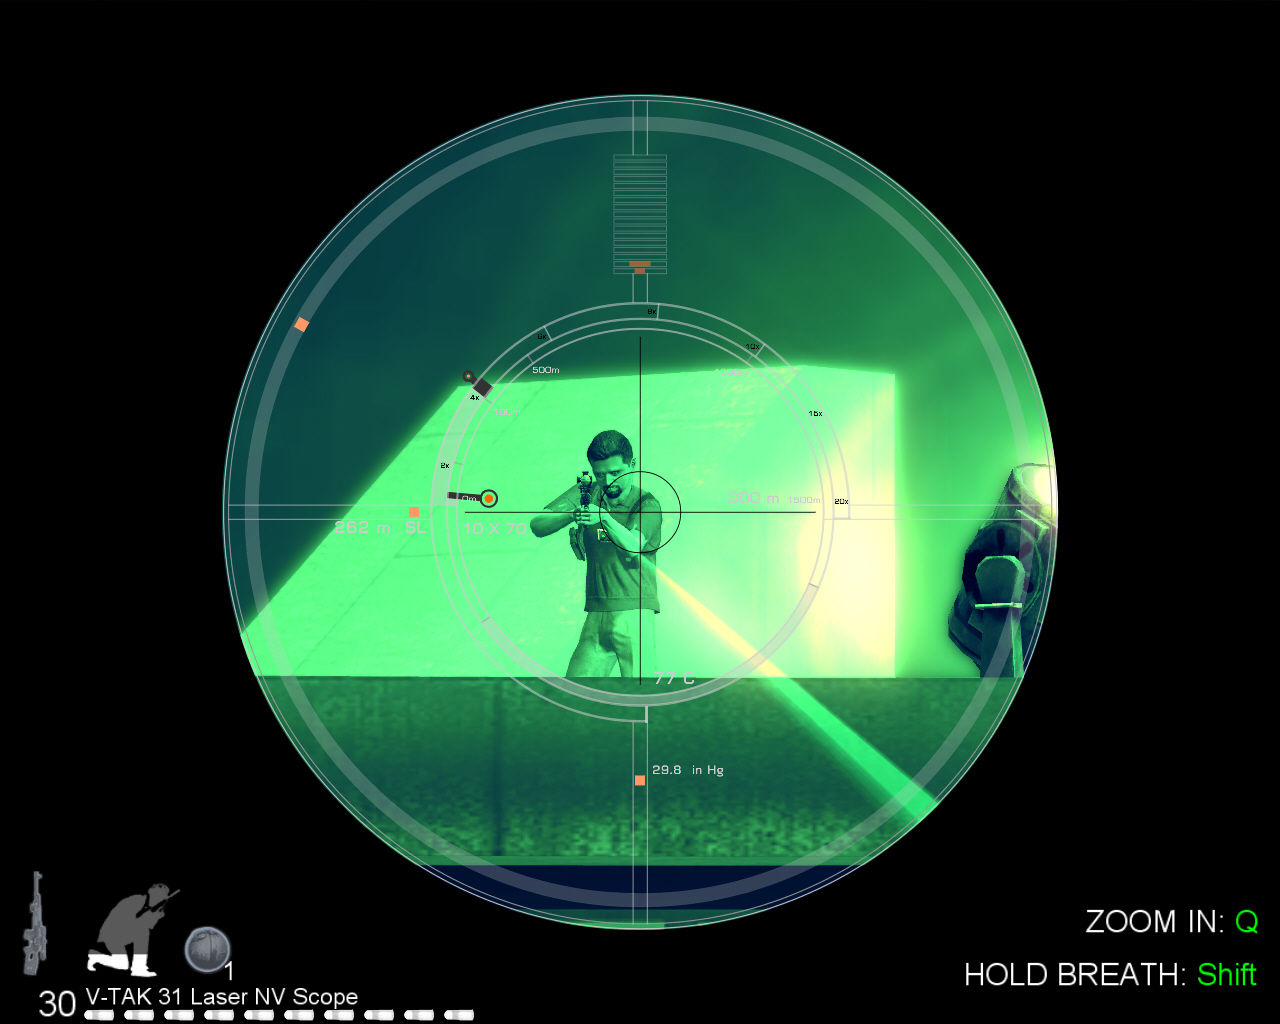 007: Quantum of Solace Windows Using sniper rifle.